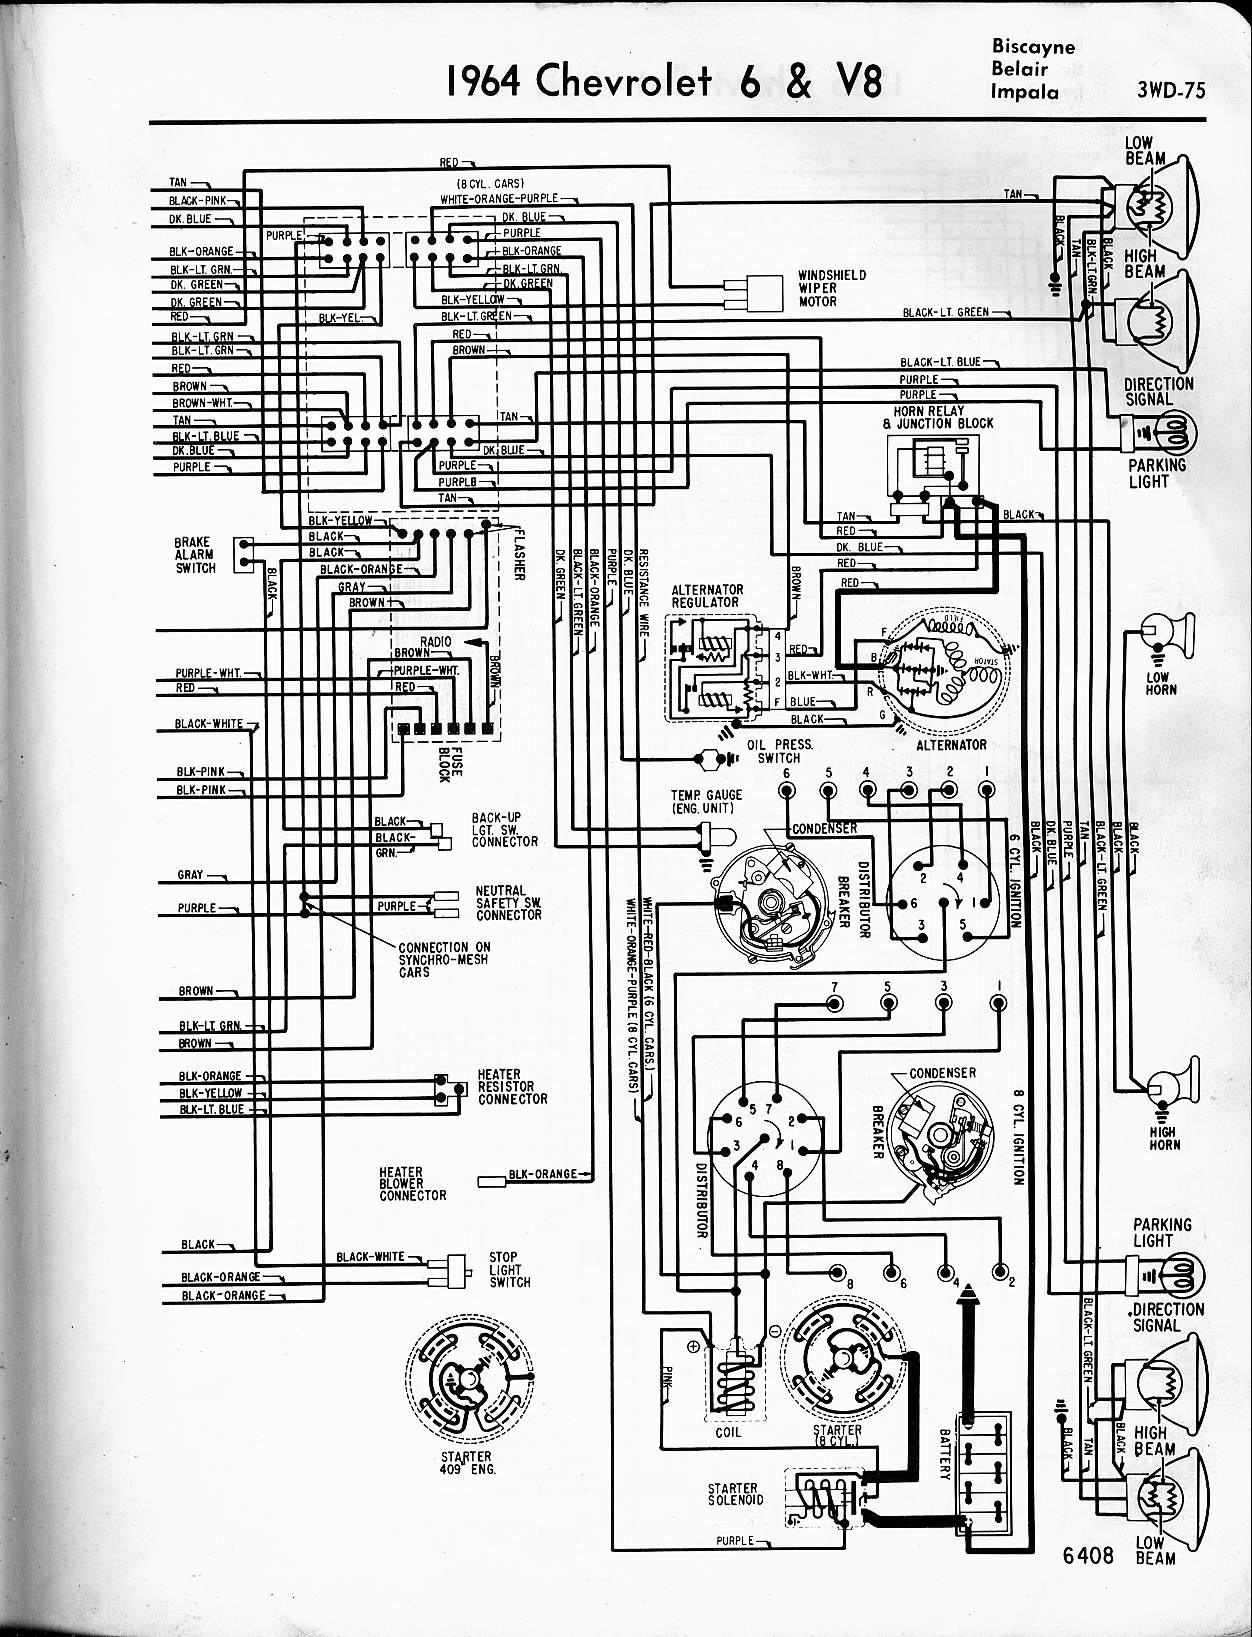 1960 Chevy Wiring Diagram Just Wiring Diagram